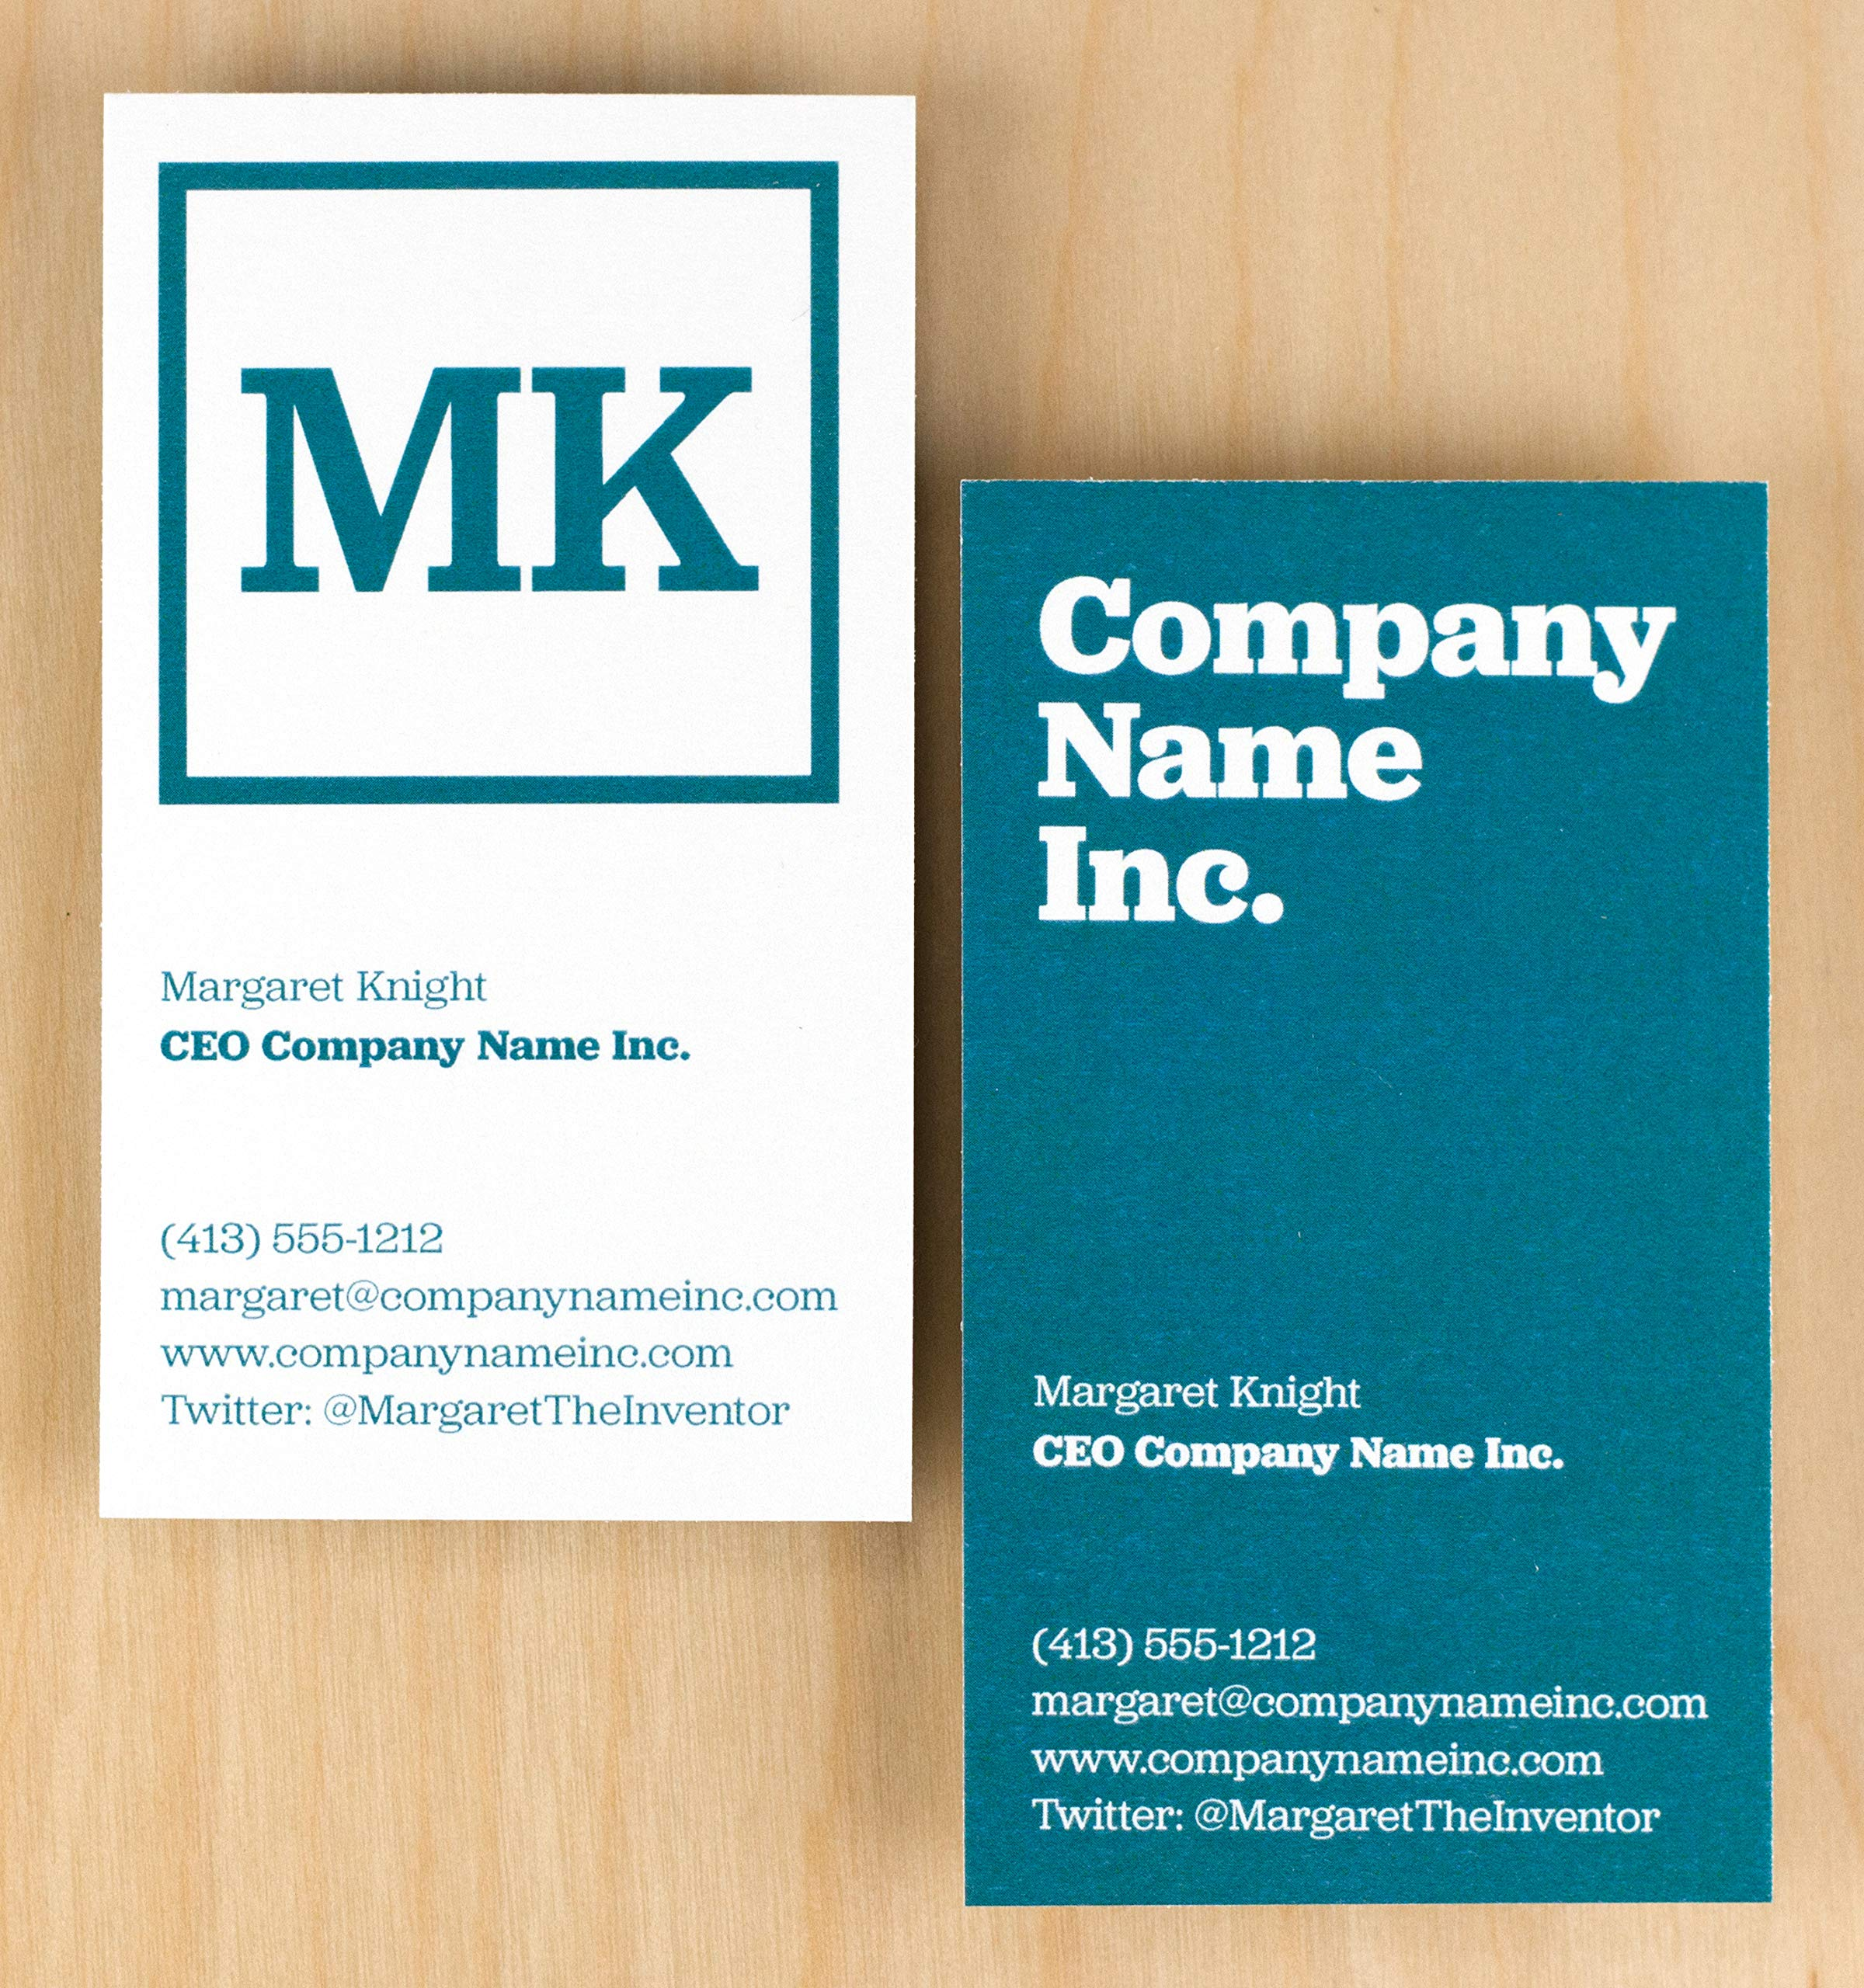 Buttonsmith Custom Ultra Thick Printed Business Cards - 3.5''x2'' - Quantity 500 - Double-Sided, 32 pt Smooth Touch - Made in The USA by Buttonsmith (Image #8)